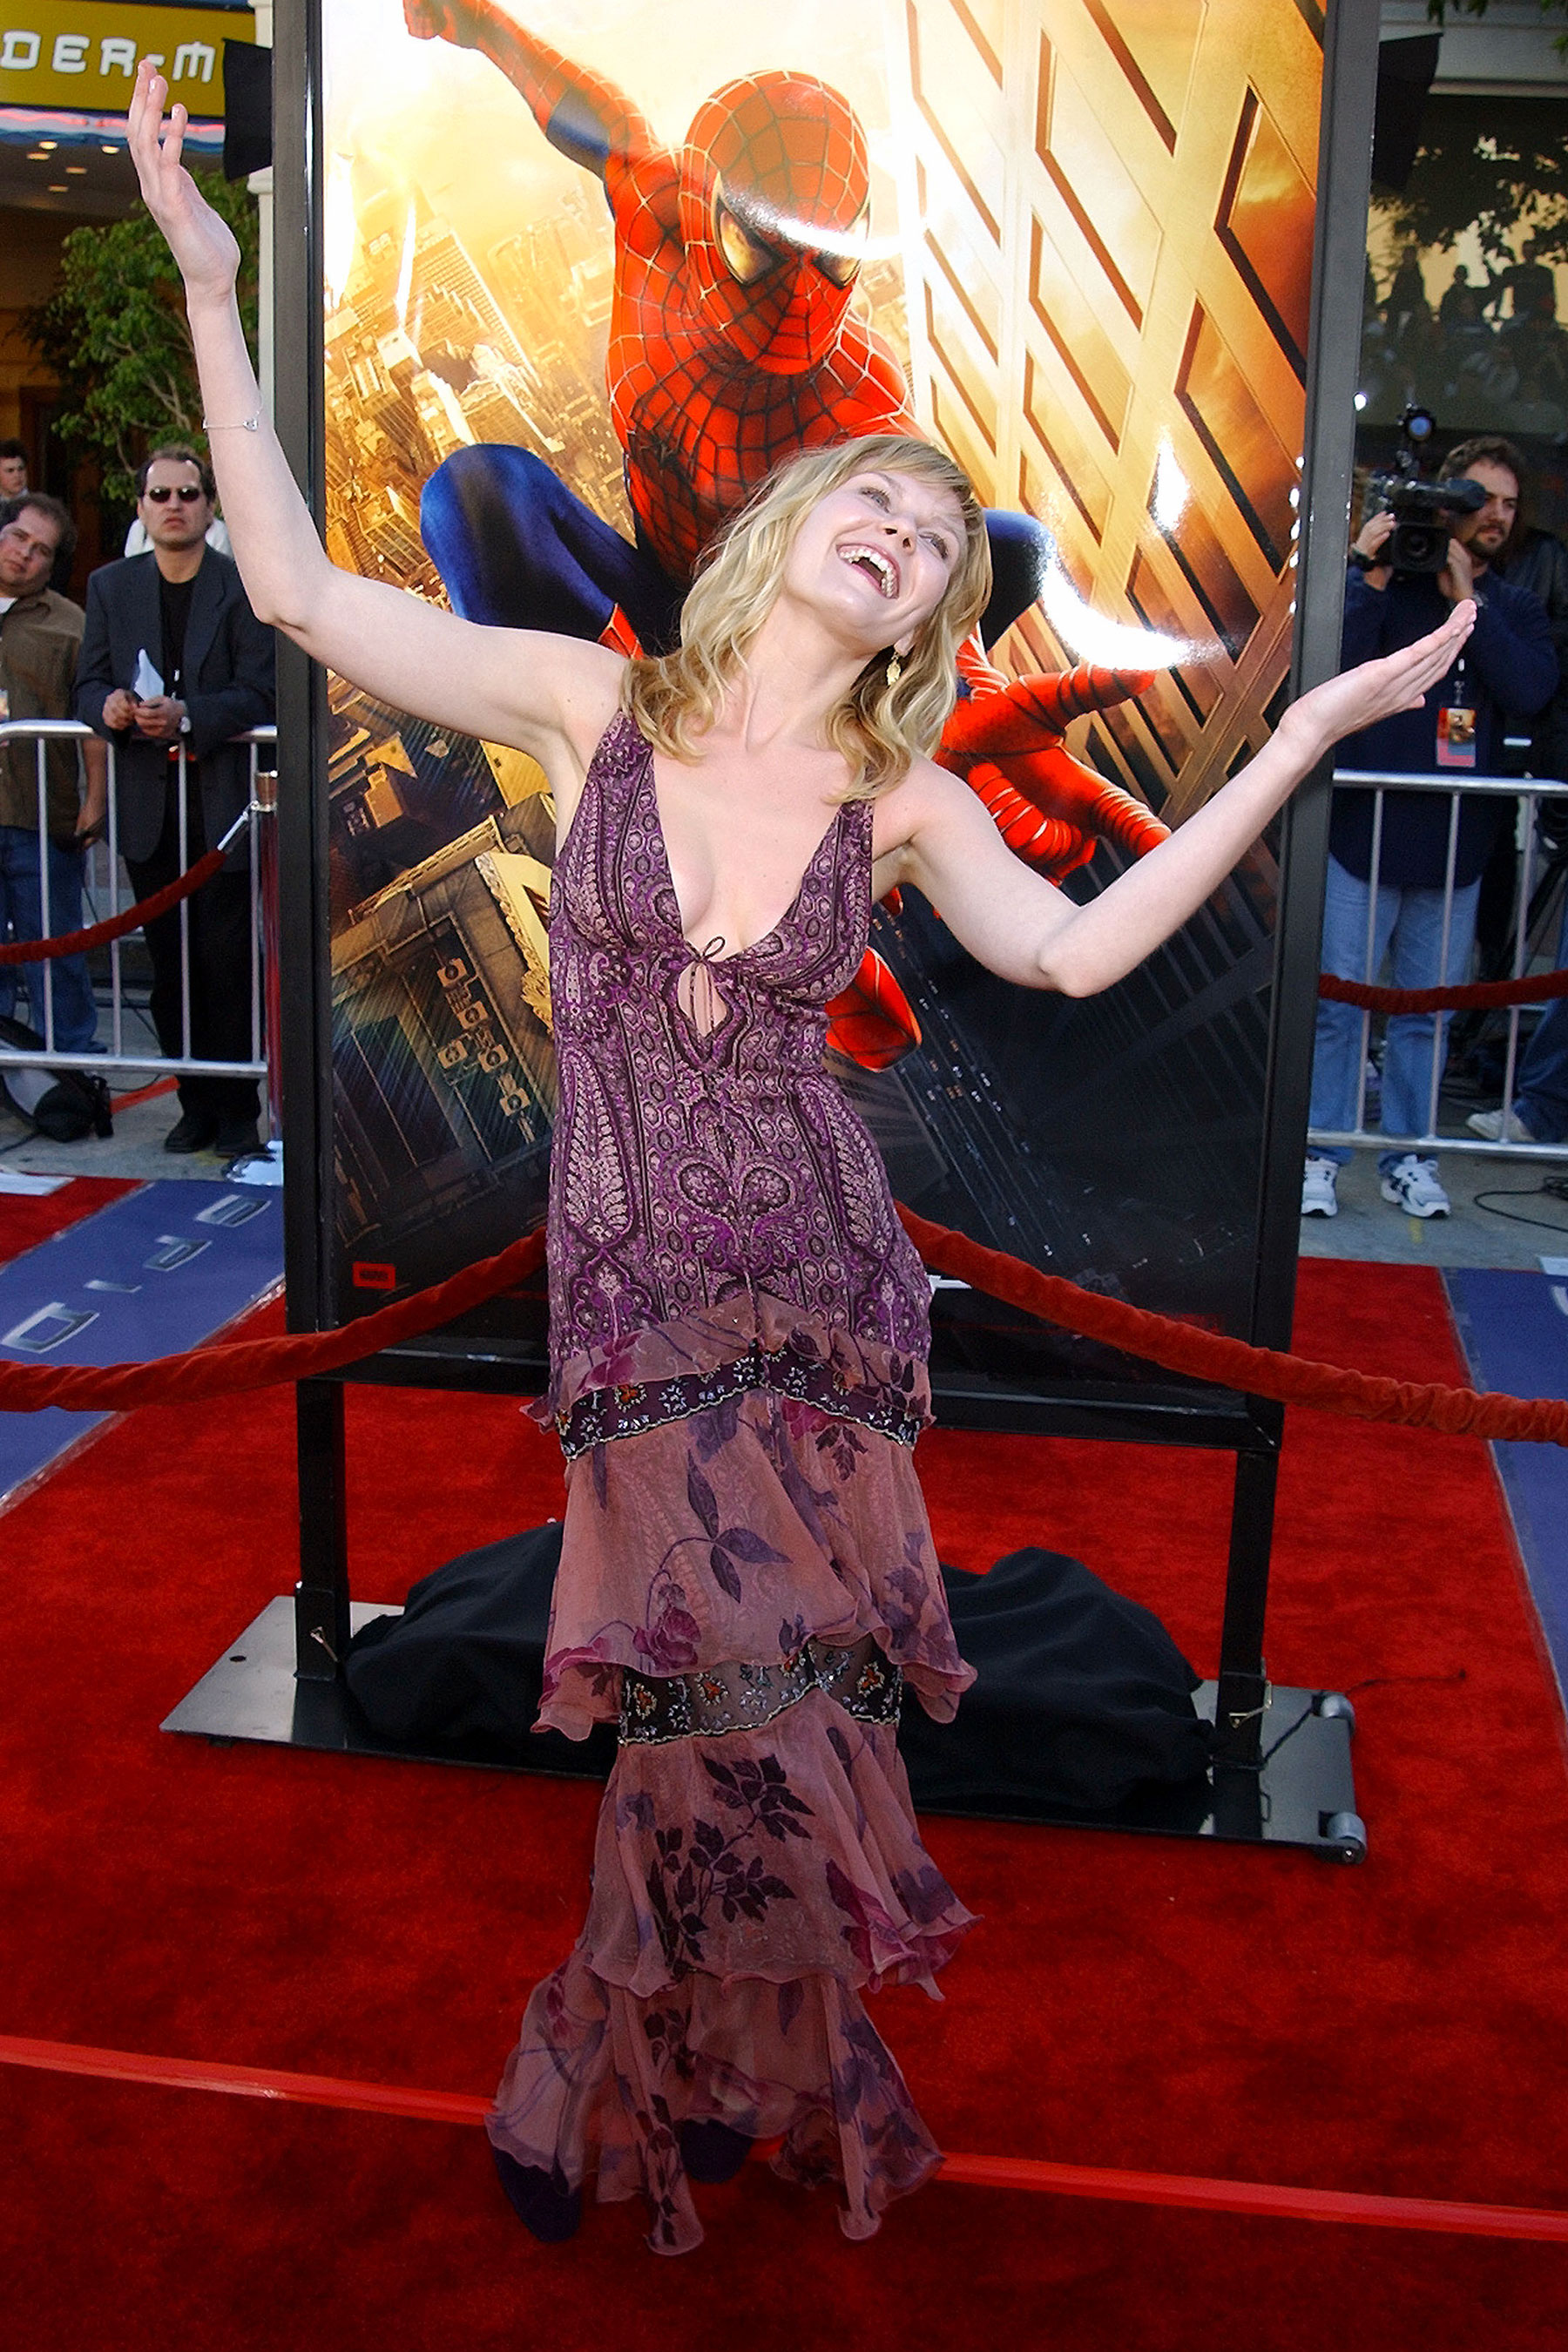 Kirsten Dunst at an event for Spider-Man (2002)